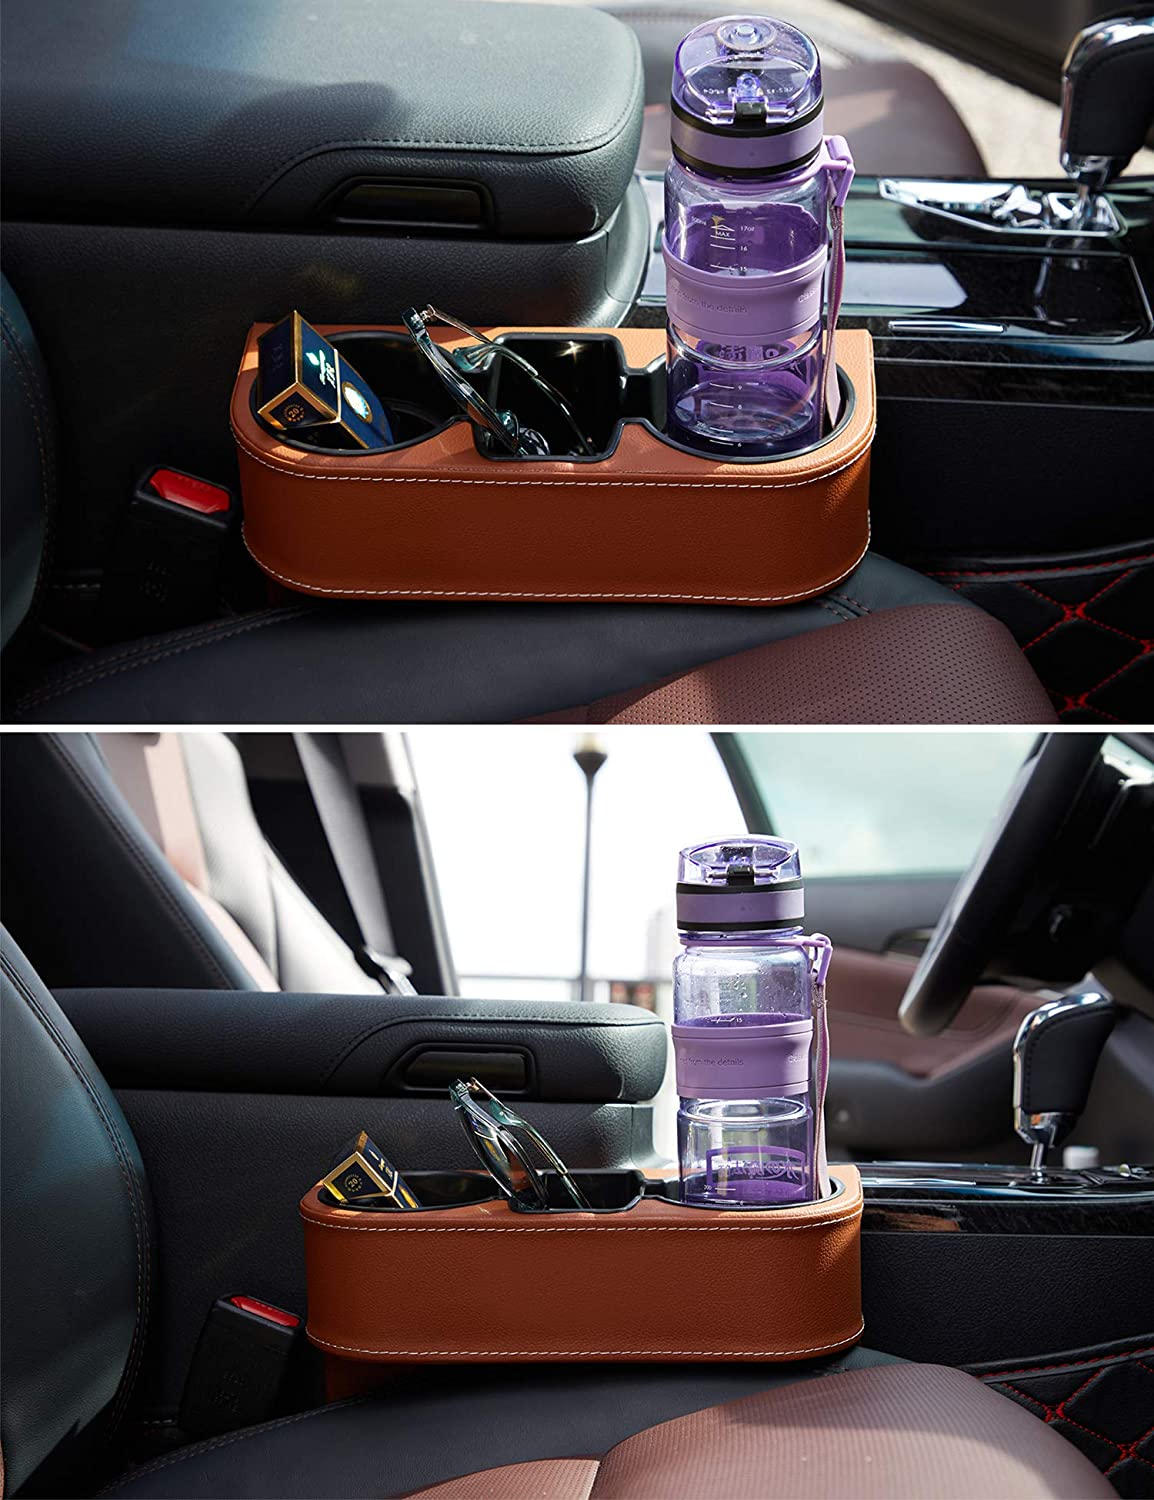 IOKSCTER Multifunctional Car Seat Organizer with PU Leather,Front Between Seat Gap Filler,Seat Cup Cell Phone Drinks Holder Glove Box Car Interior Organizer Trunk SUV Beige